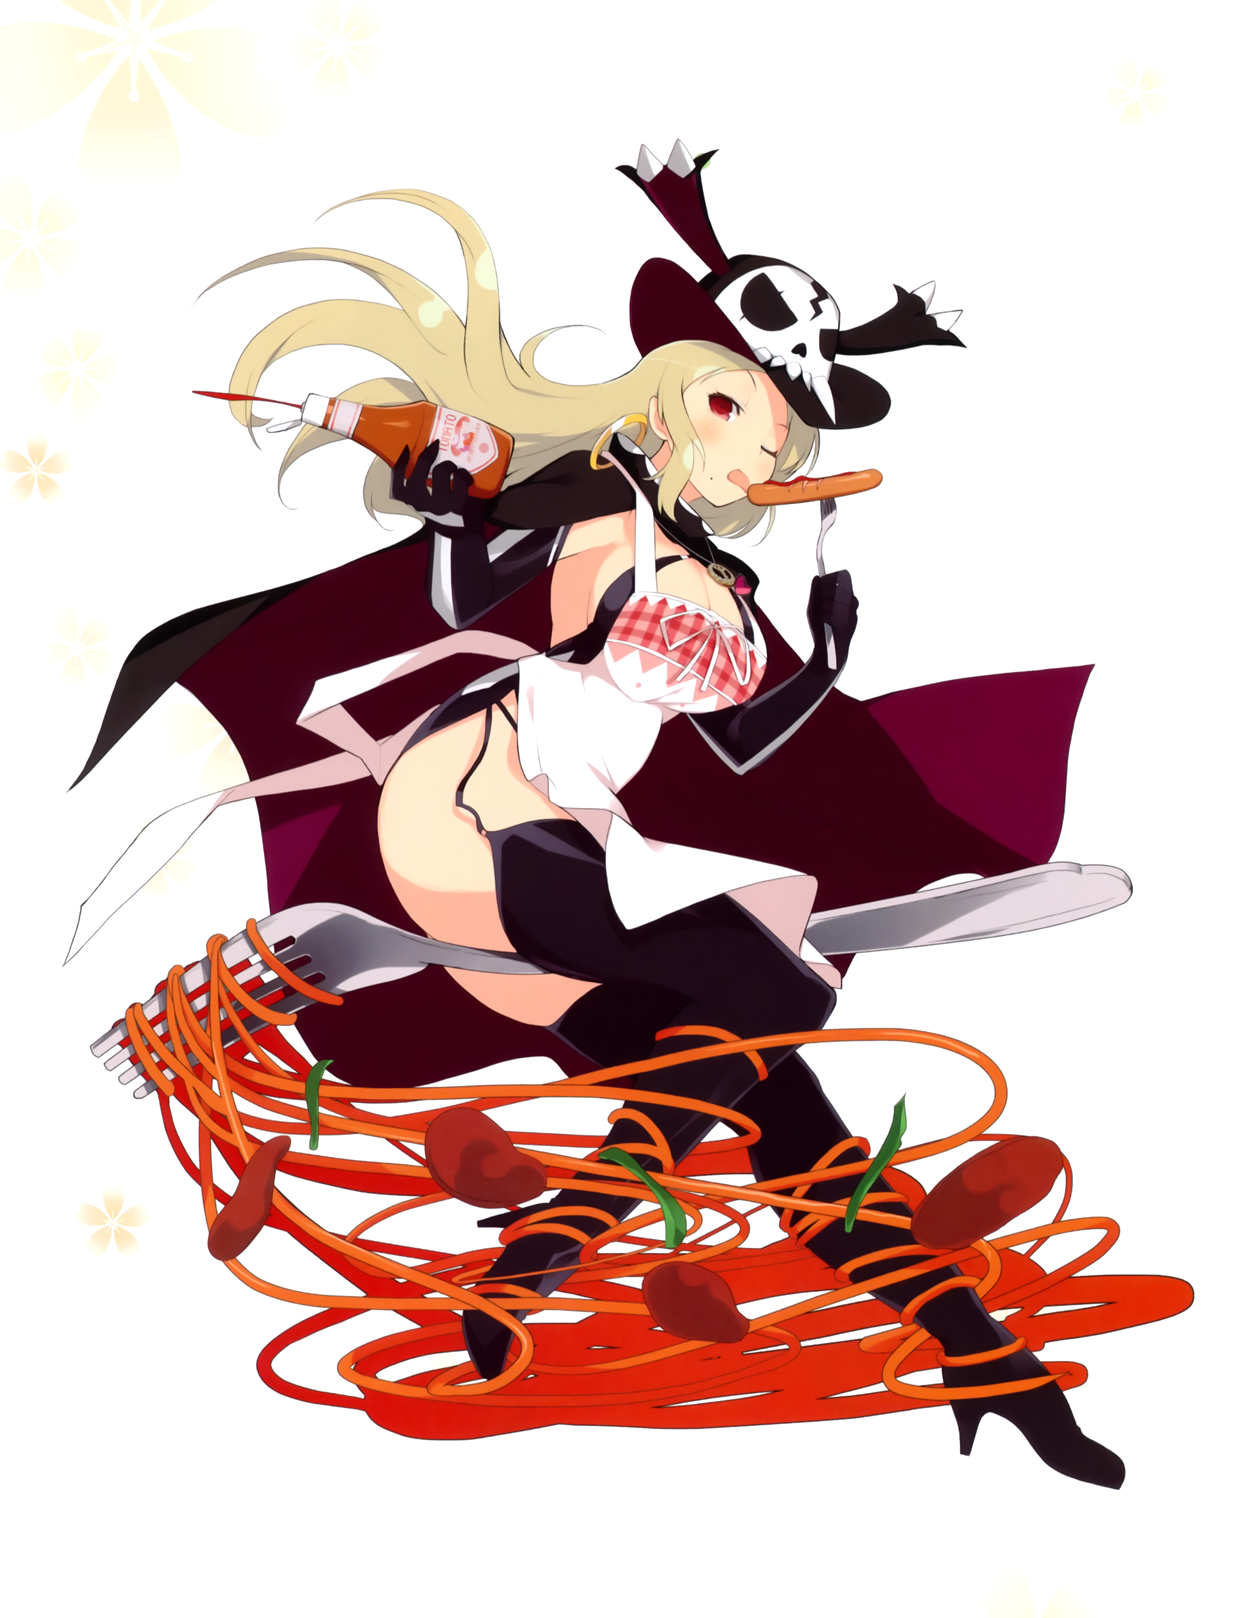 yande.re 362391 heels no_bra open_shirt pirate senran_kagura stockings thighhigh.png